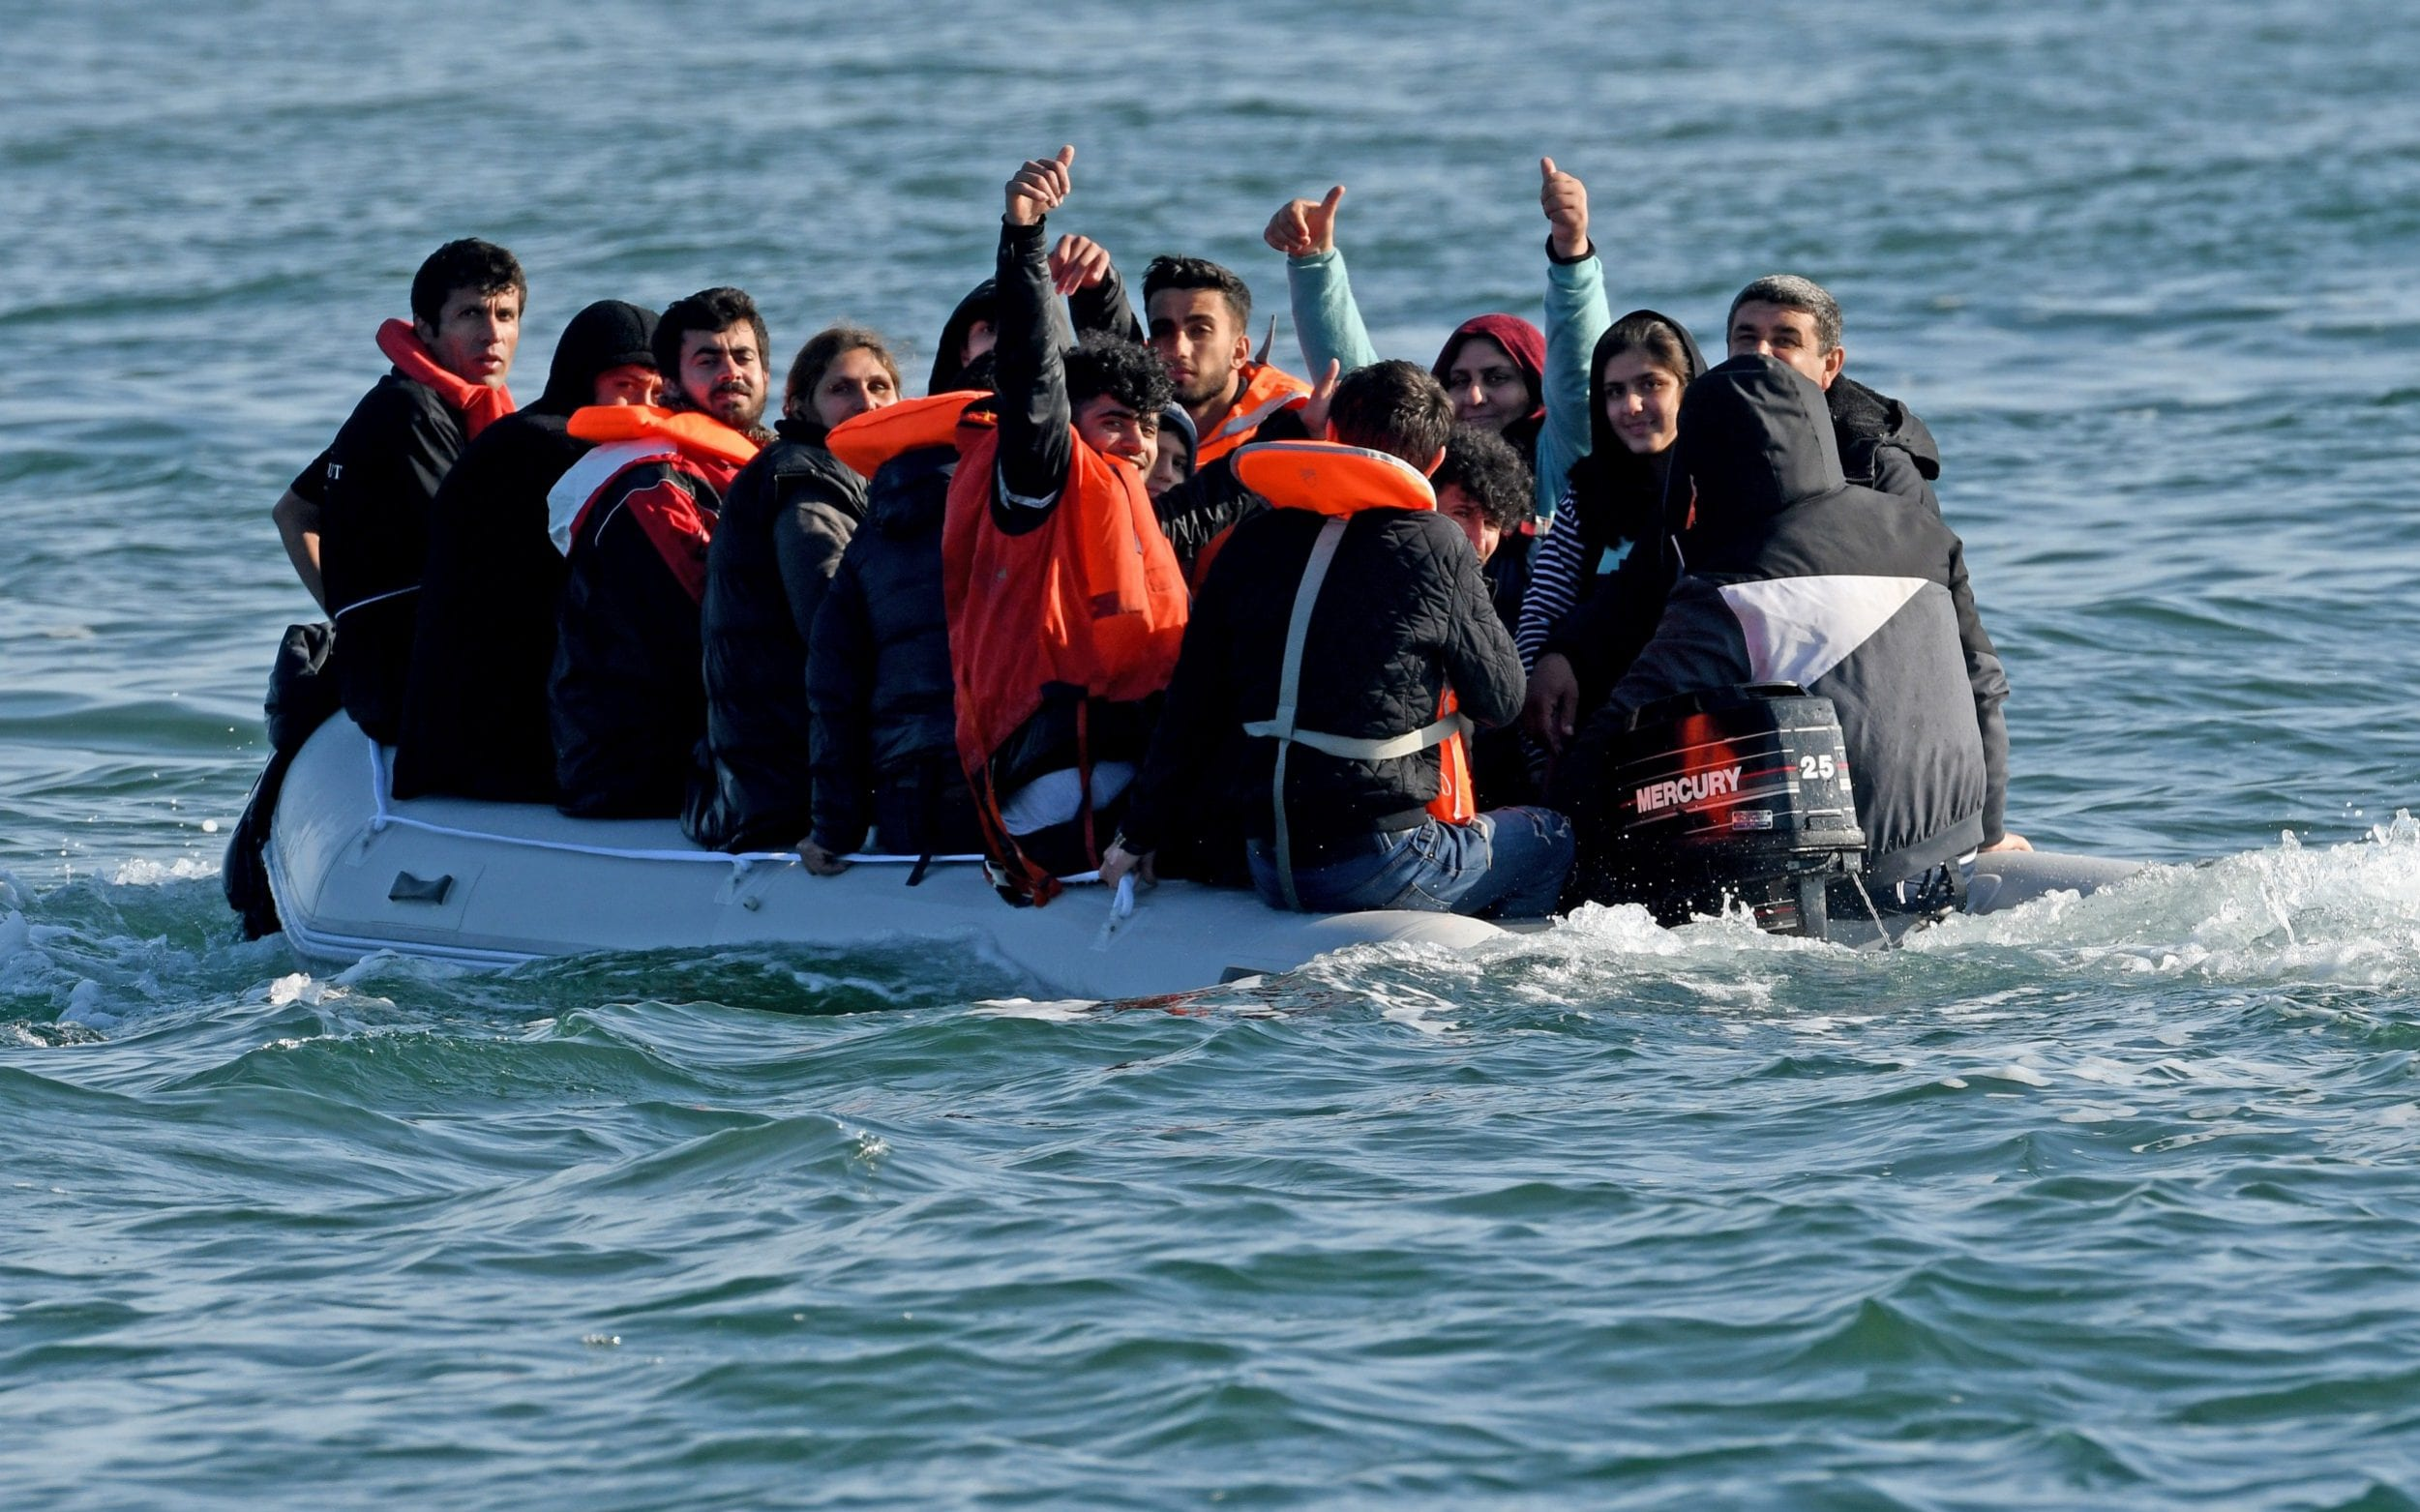 At least 650 migrants make illegal English Channel crossing in one week